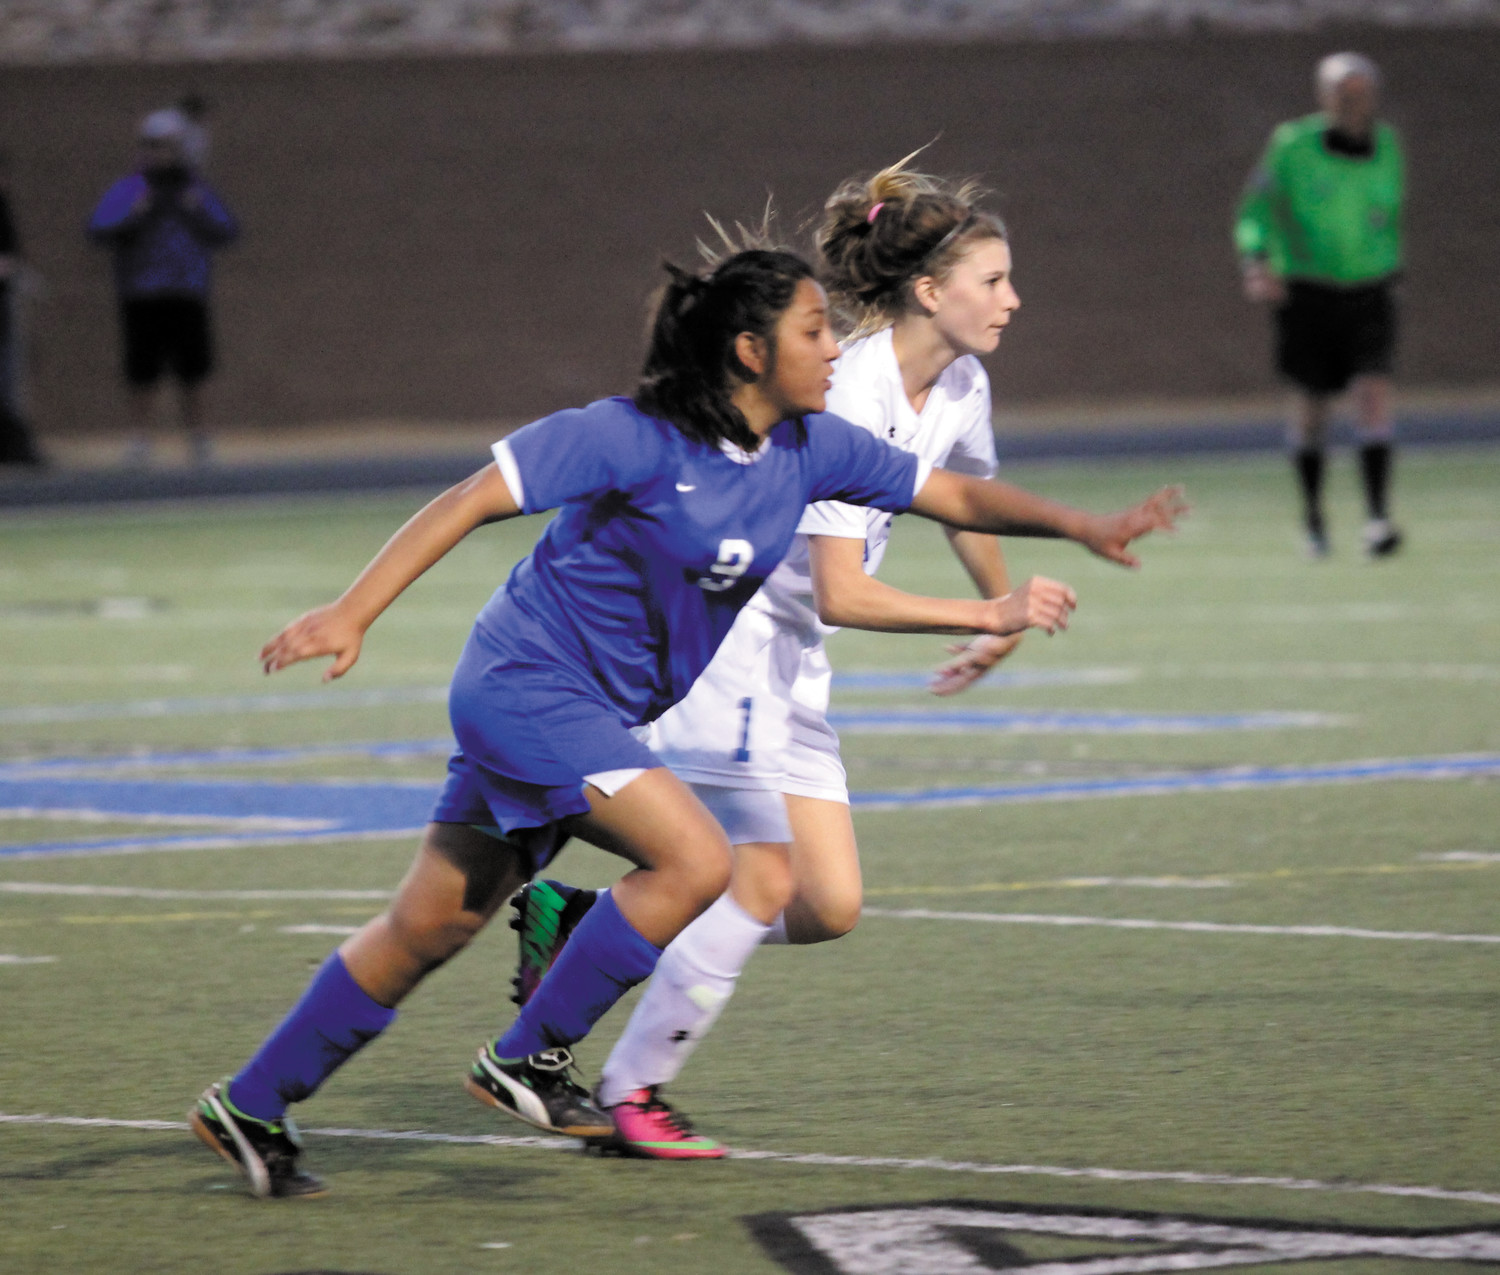 Alameda's Lizabeth Garcia (9) tried to beat an Englewood player to a loose ball during a league game in 2015. Garcia won control of the ball and helped Alameda to mount an attack.